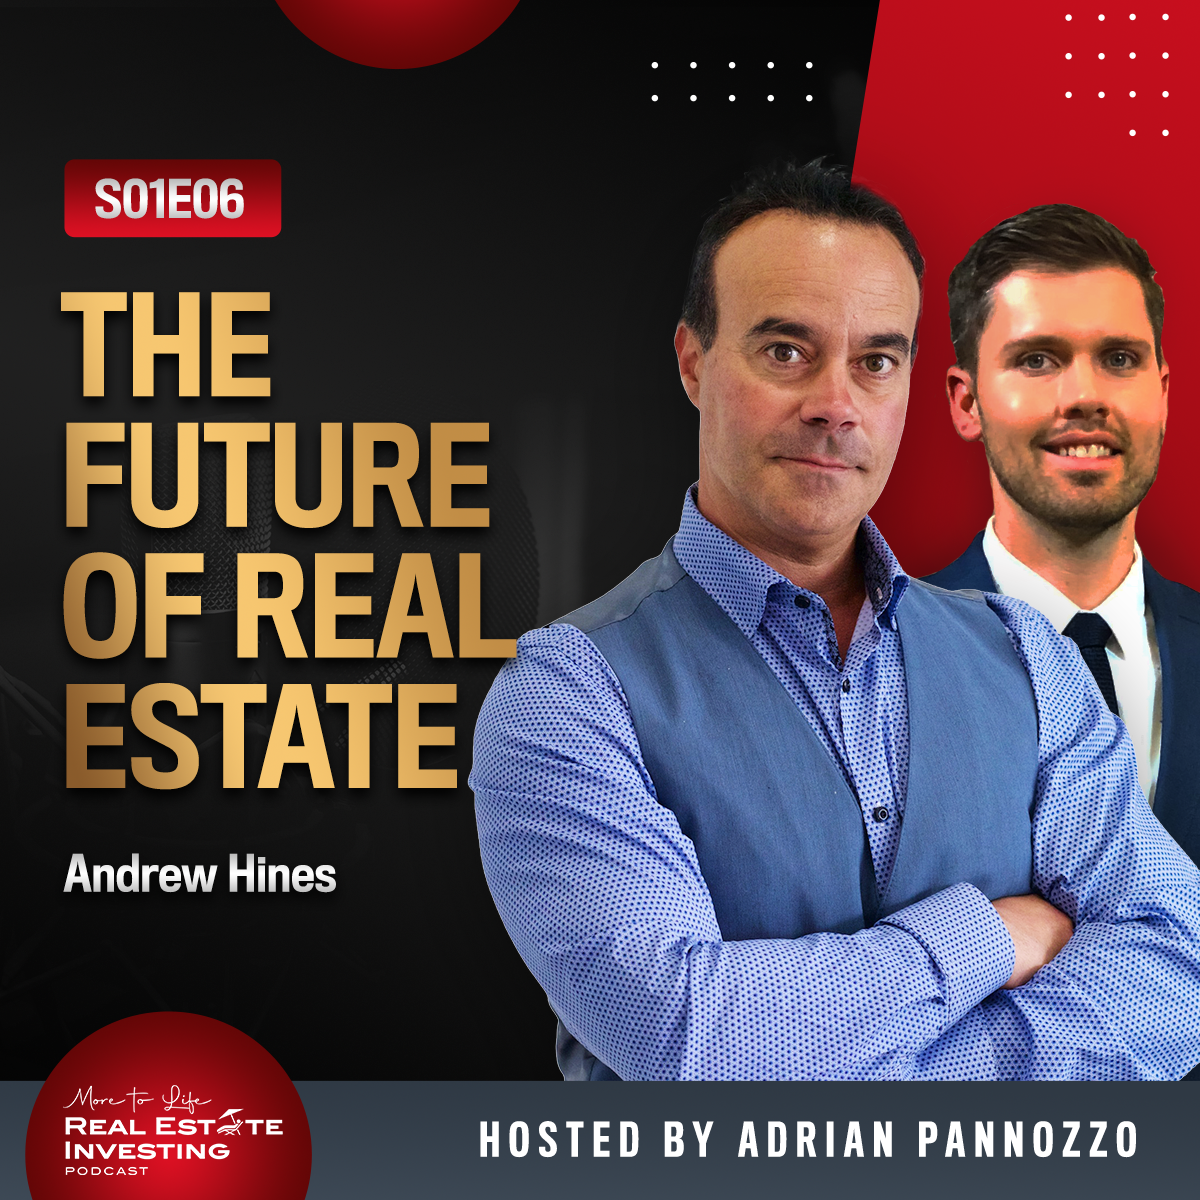 The Future of Real Estate with Andrew Hines | S01E06